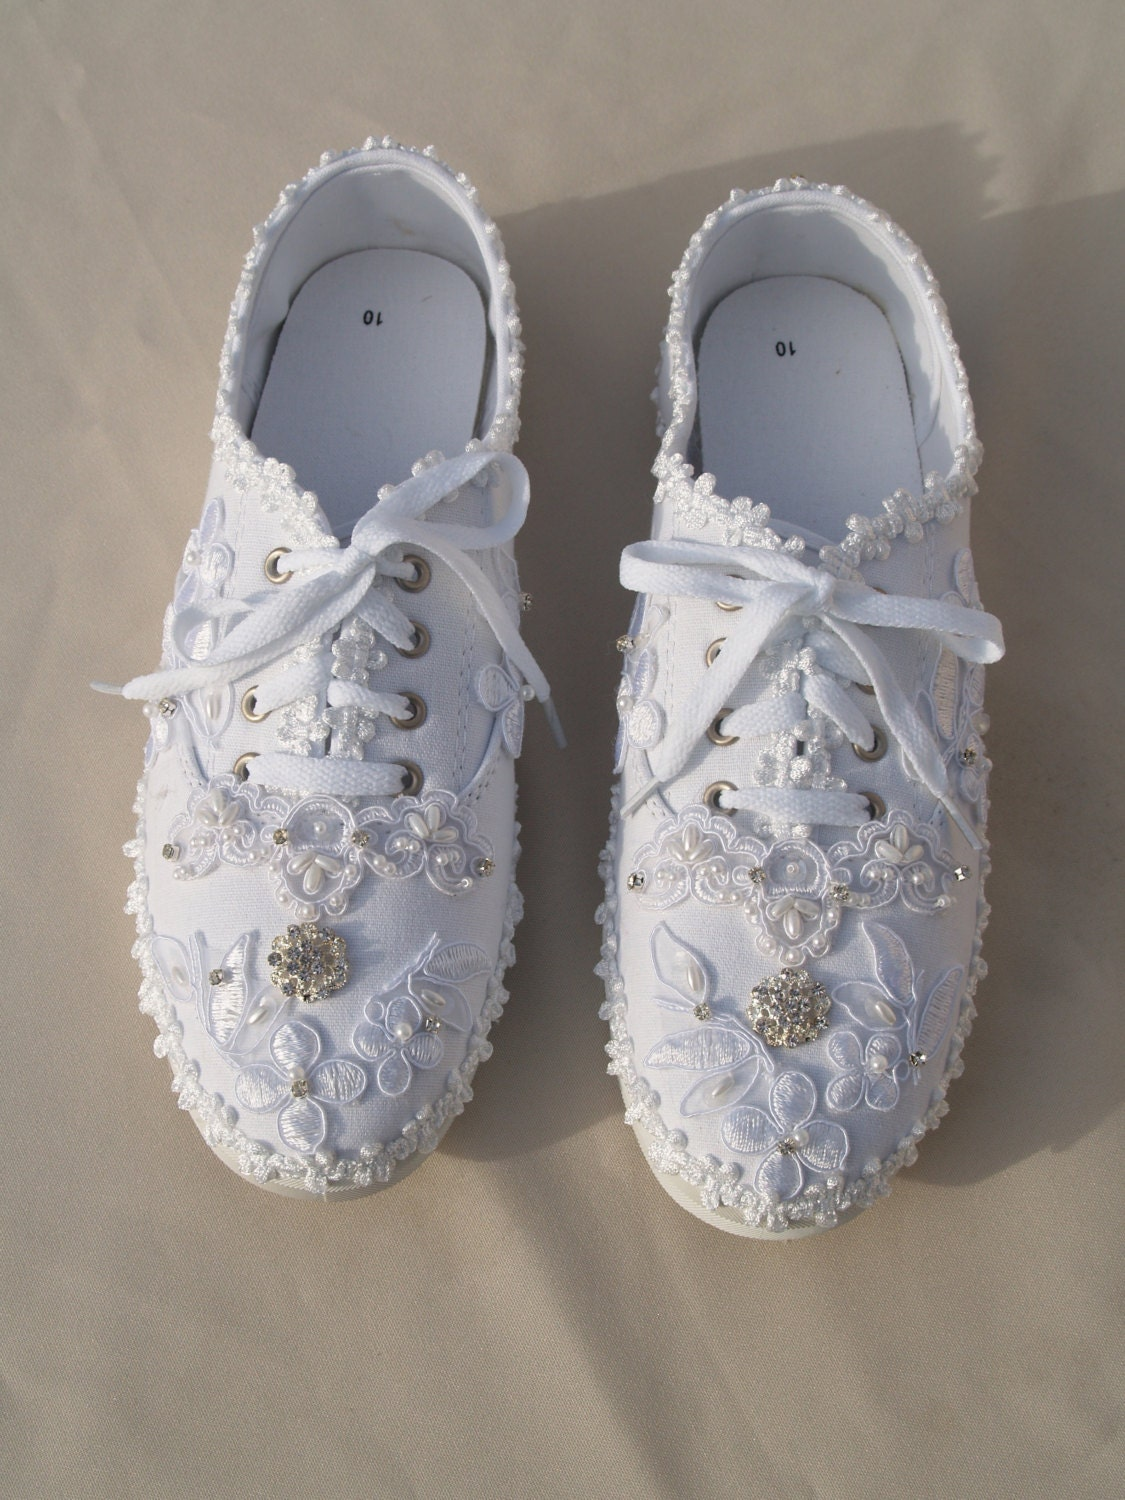 51 white wedding tennis shoes 17 best ideas about